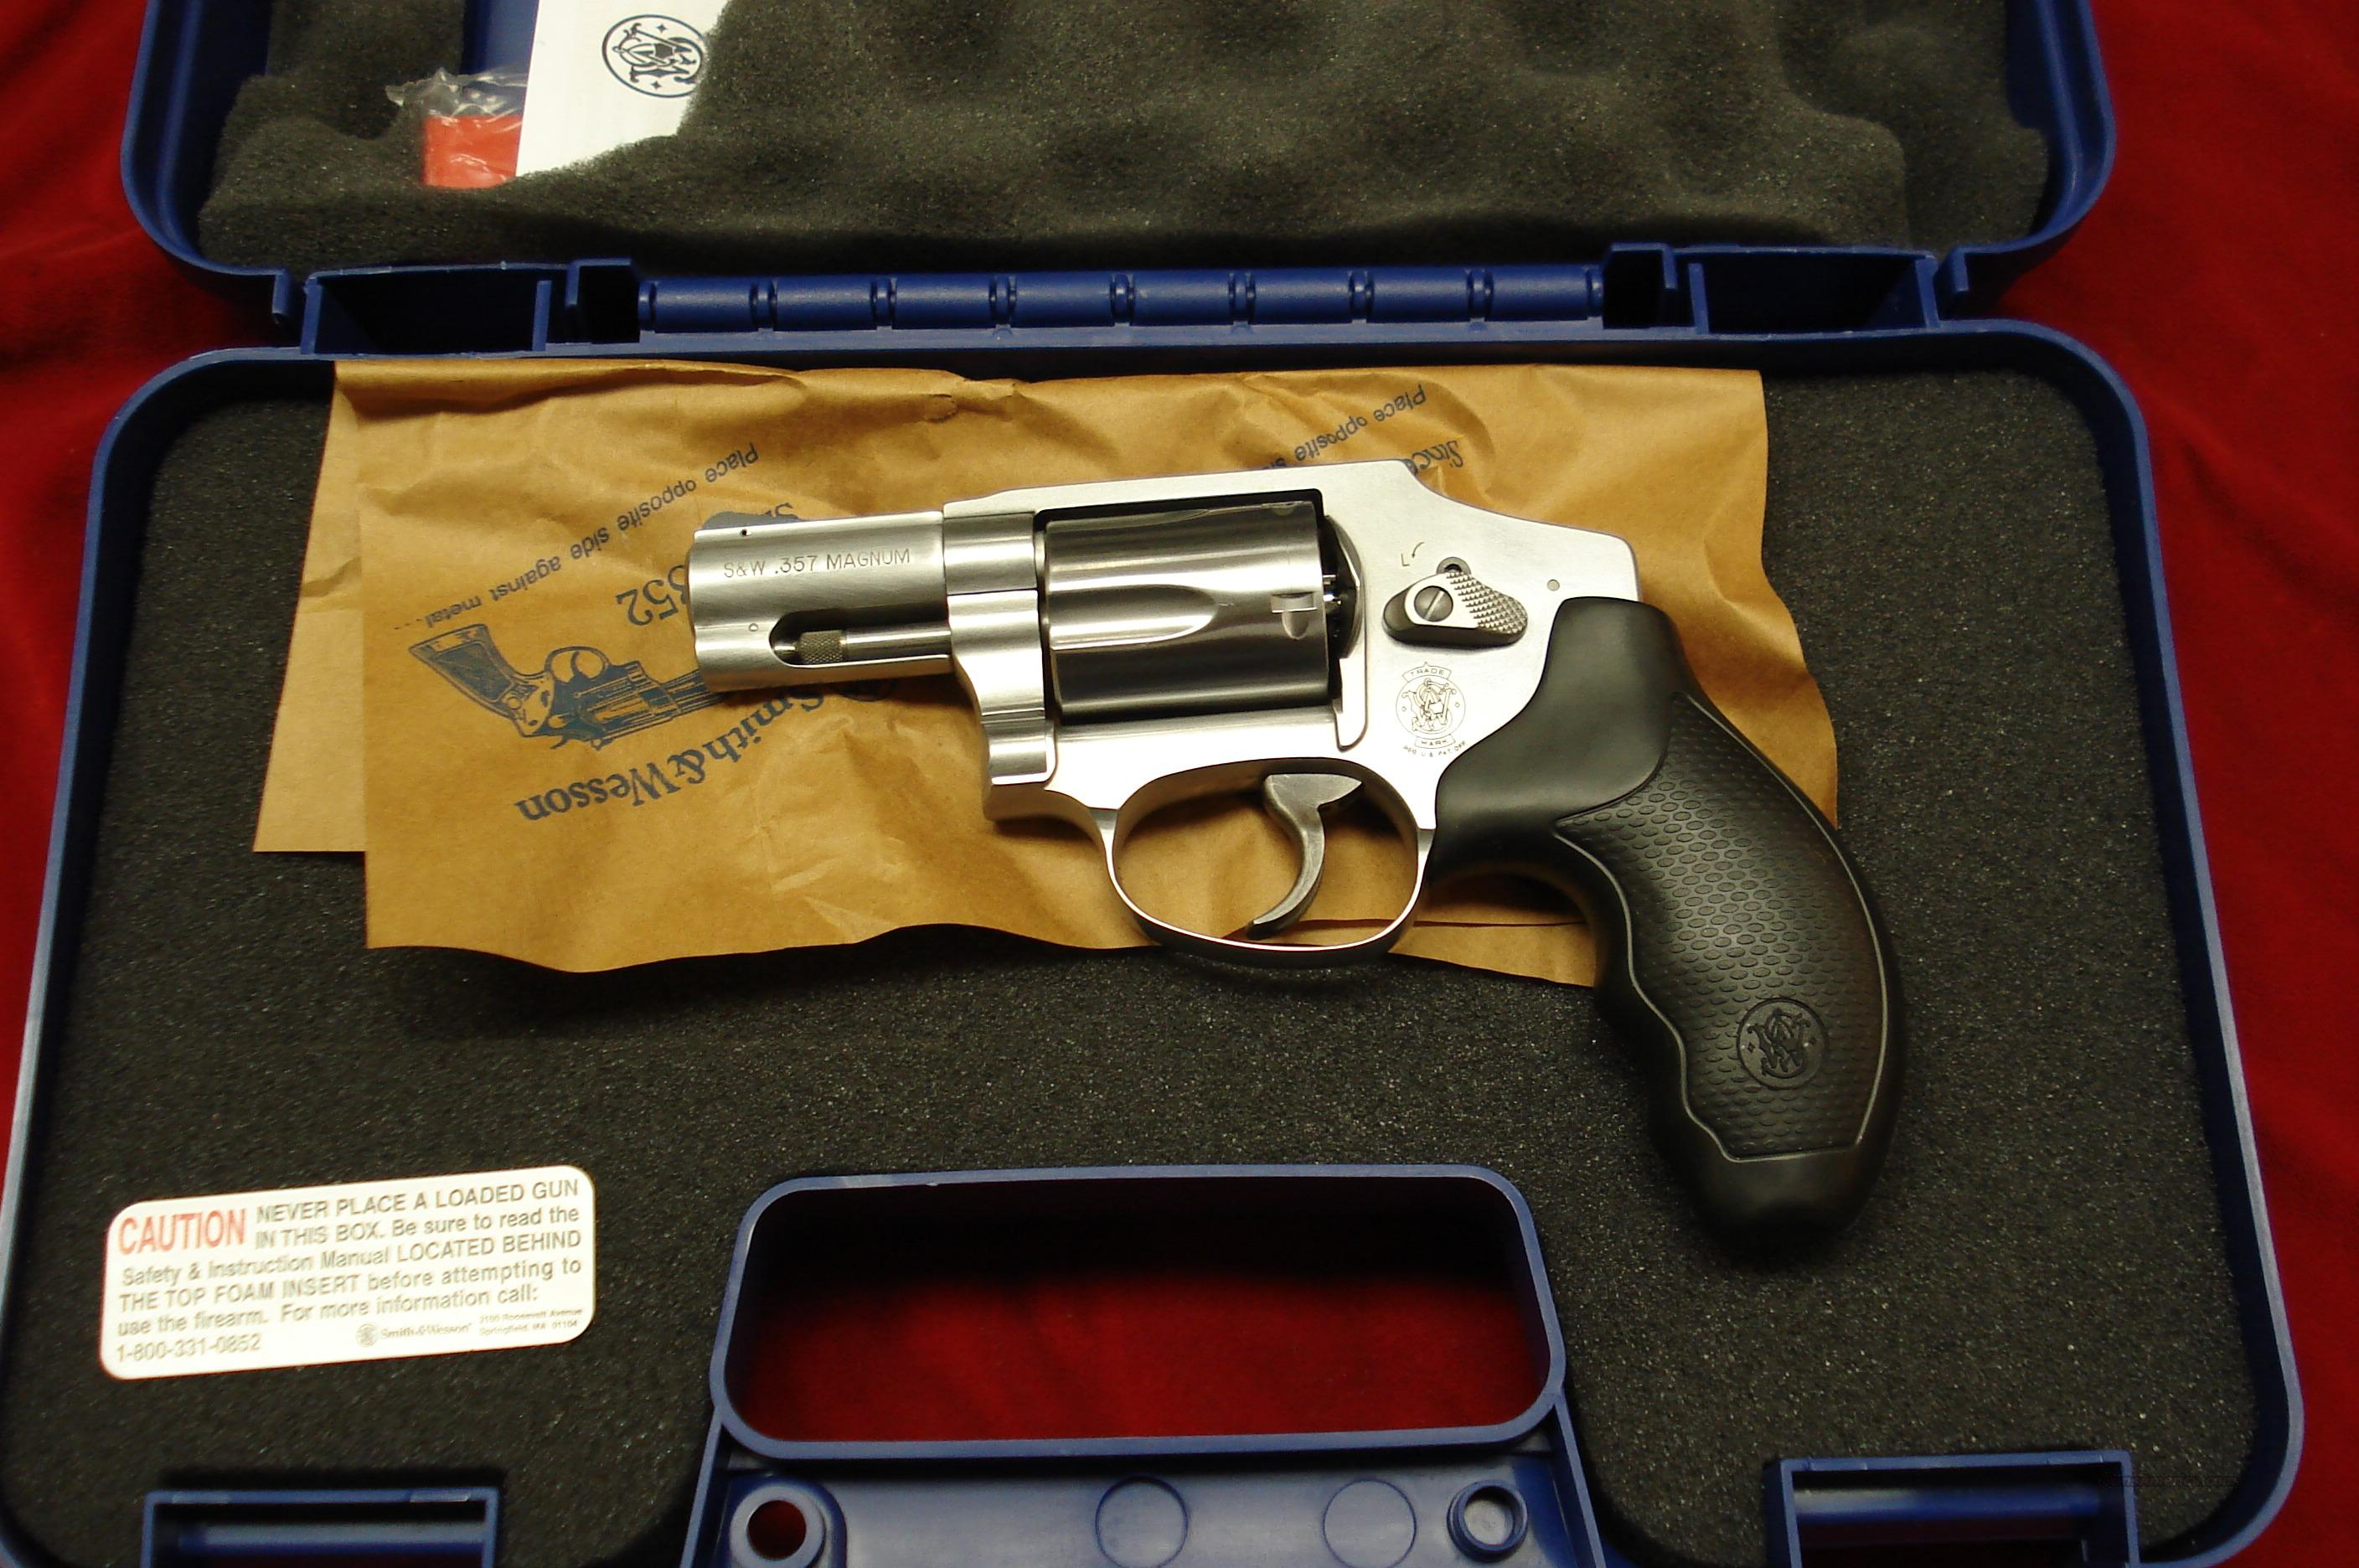 "SMITH AND WESSON MODEL MODEL 640 357MAG 2 1/8"" STAINLESS NEW  Guns > Pistols > Smith & Wesson Revolvers > Pocket Pistols"